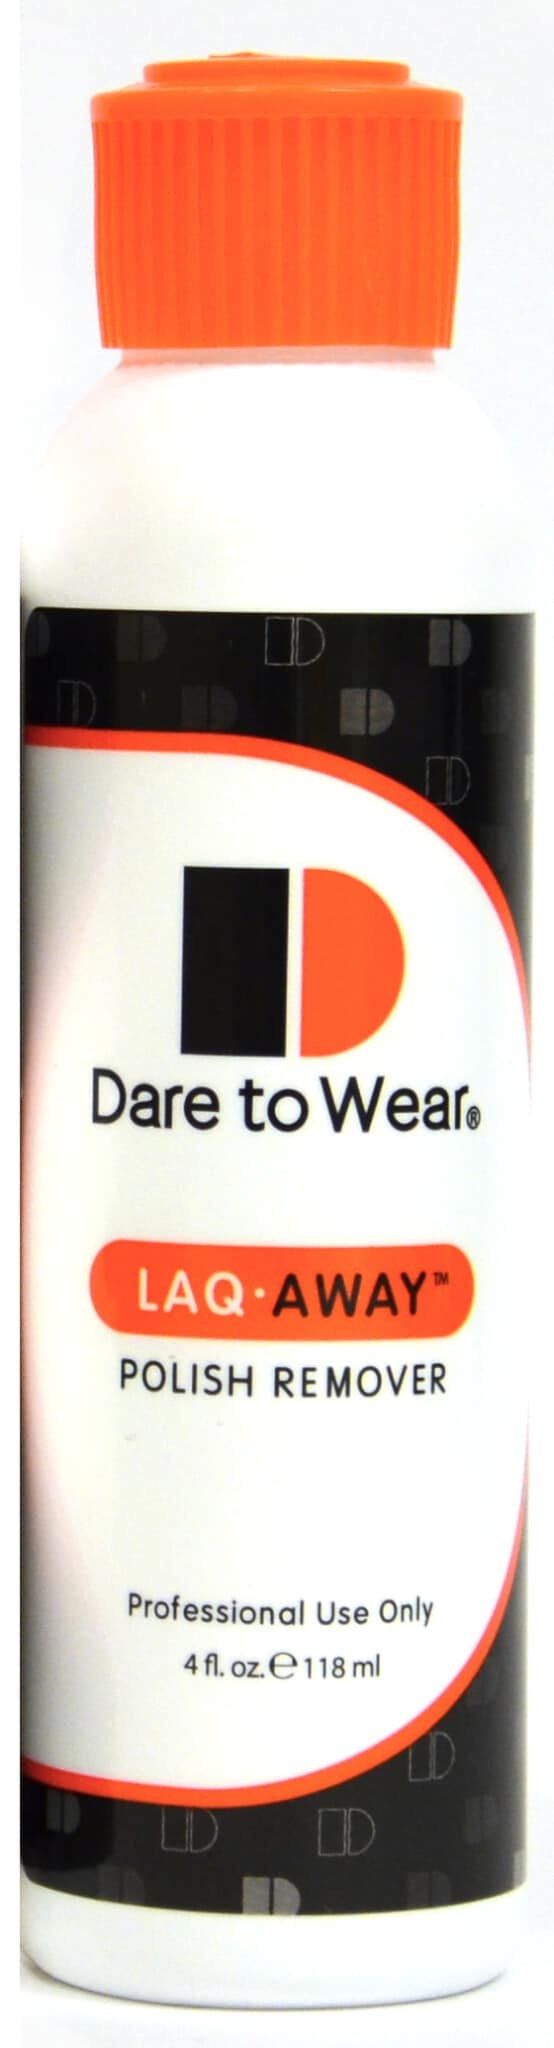 Dear to Wear Laq-Away product bottle.